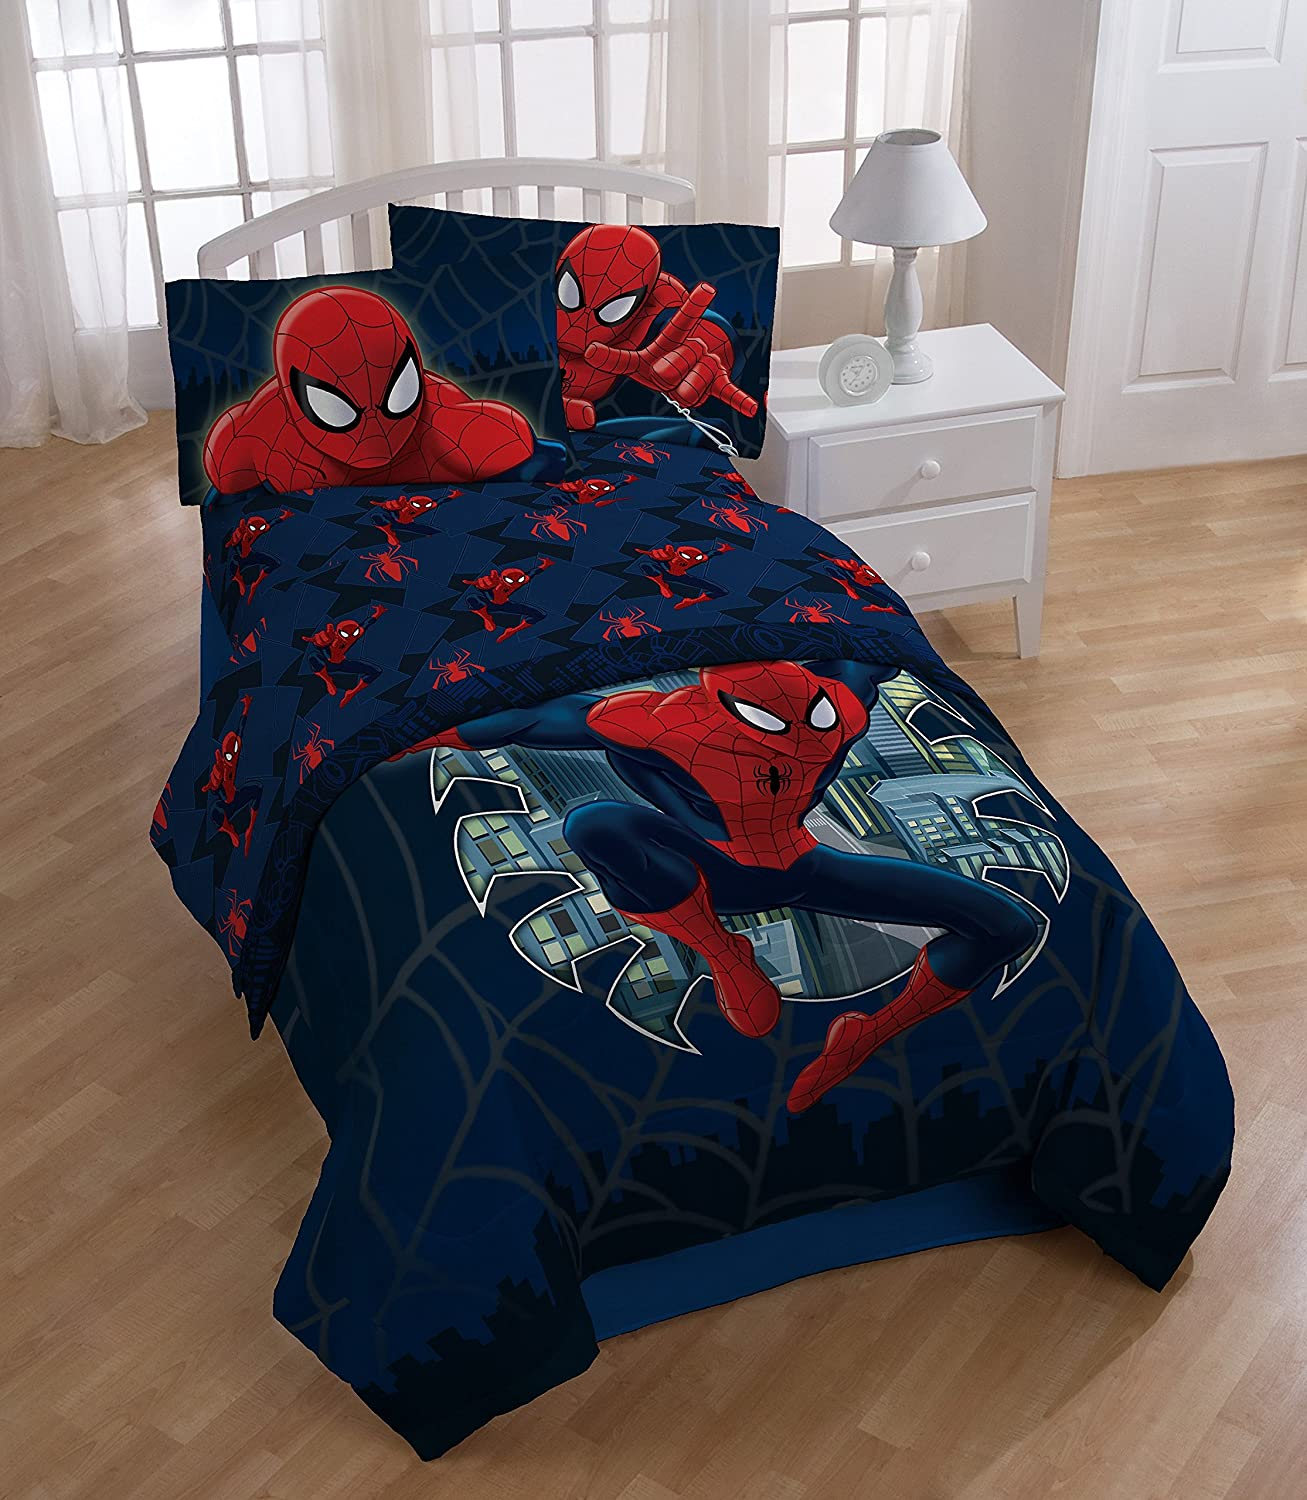 Avengers bedding set twin - Amazon Com Marvel Spiderman Supreme Microfiber 3 Piece Twin Sheet Set Home Kitchen